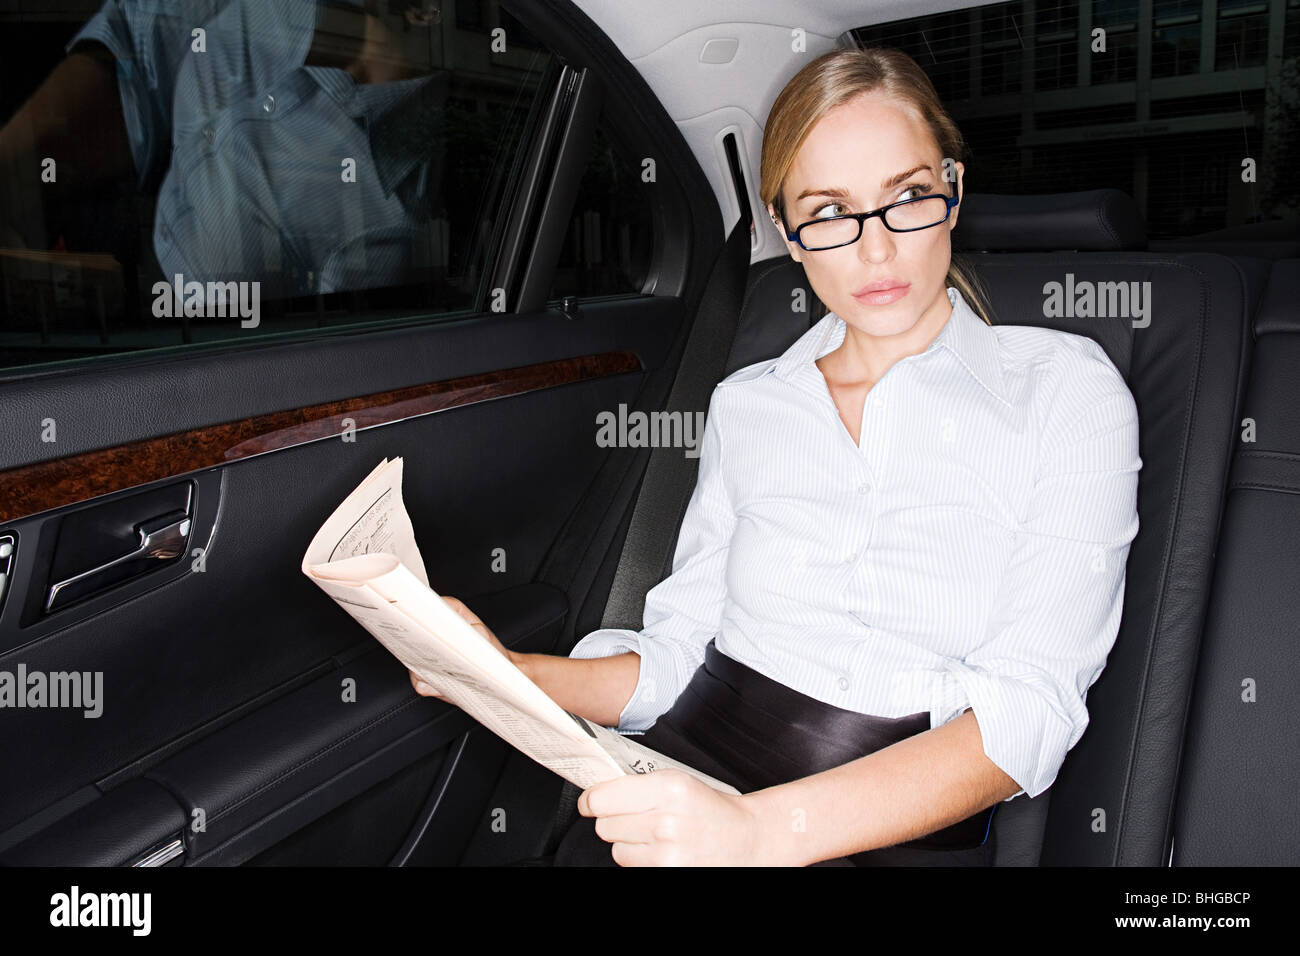 Businesswoman in the back of a car - Stock Image